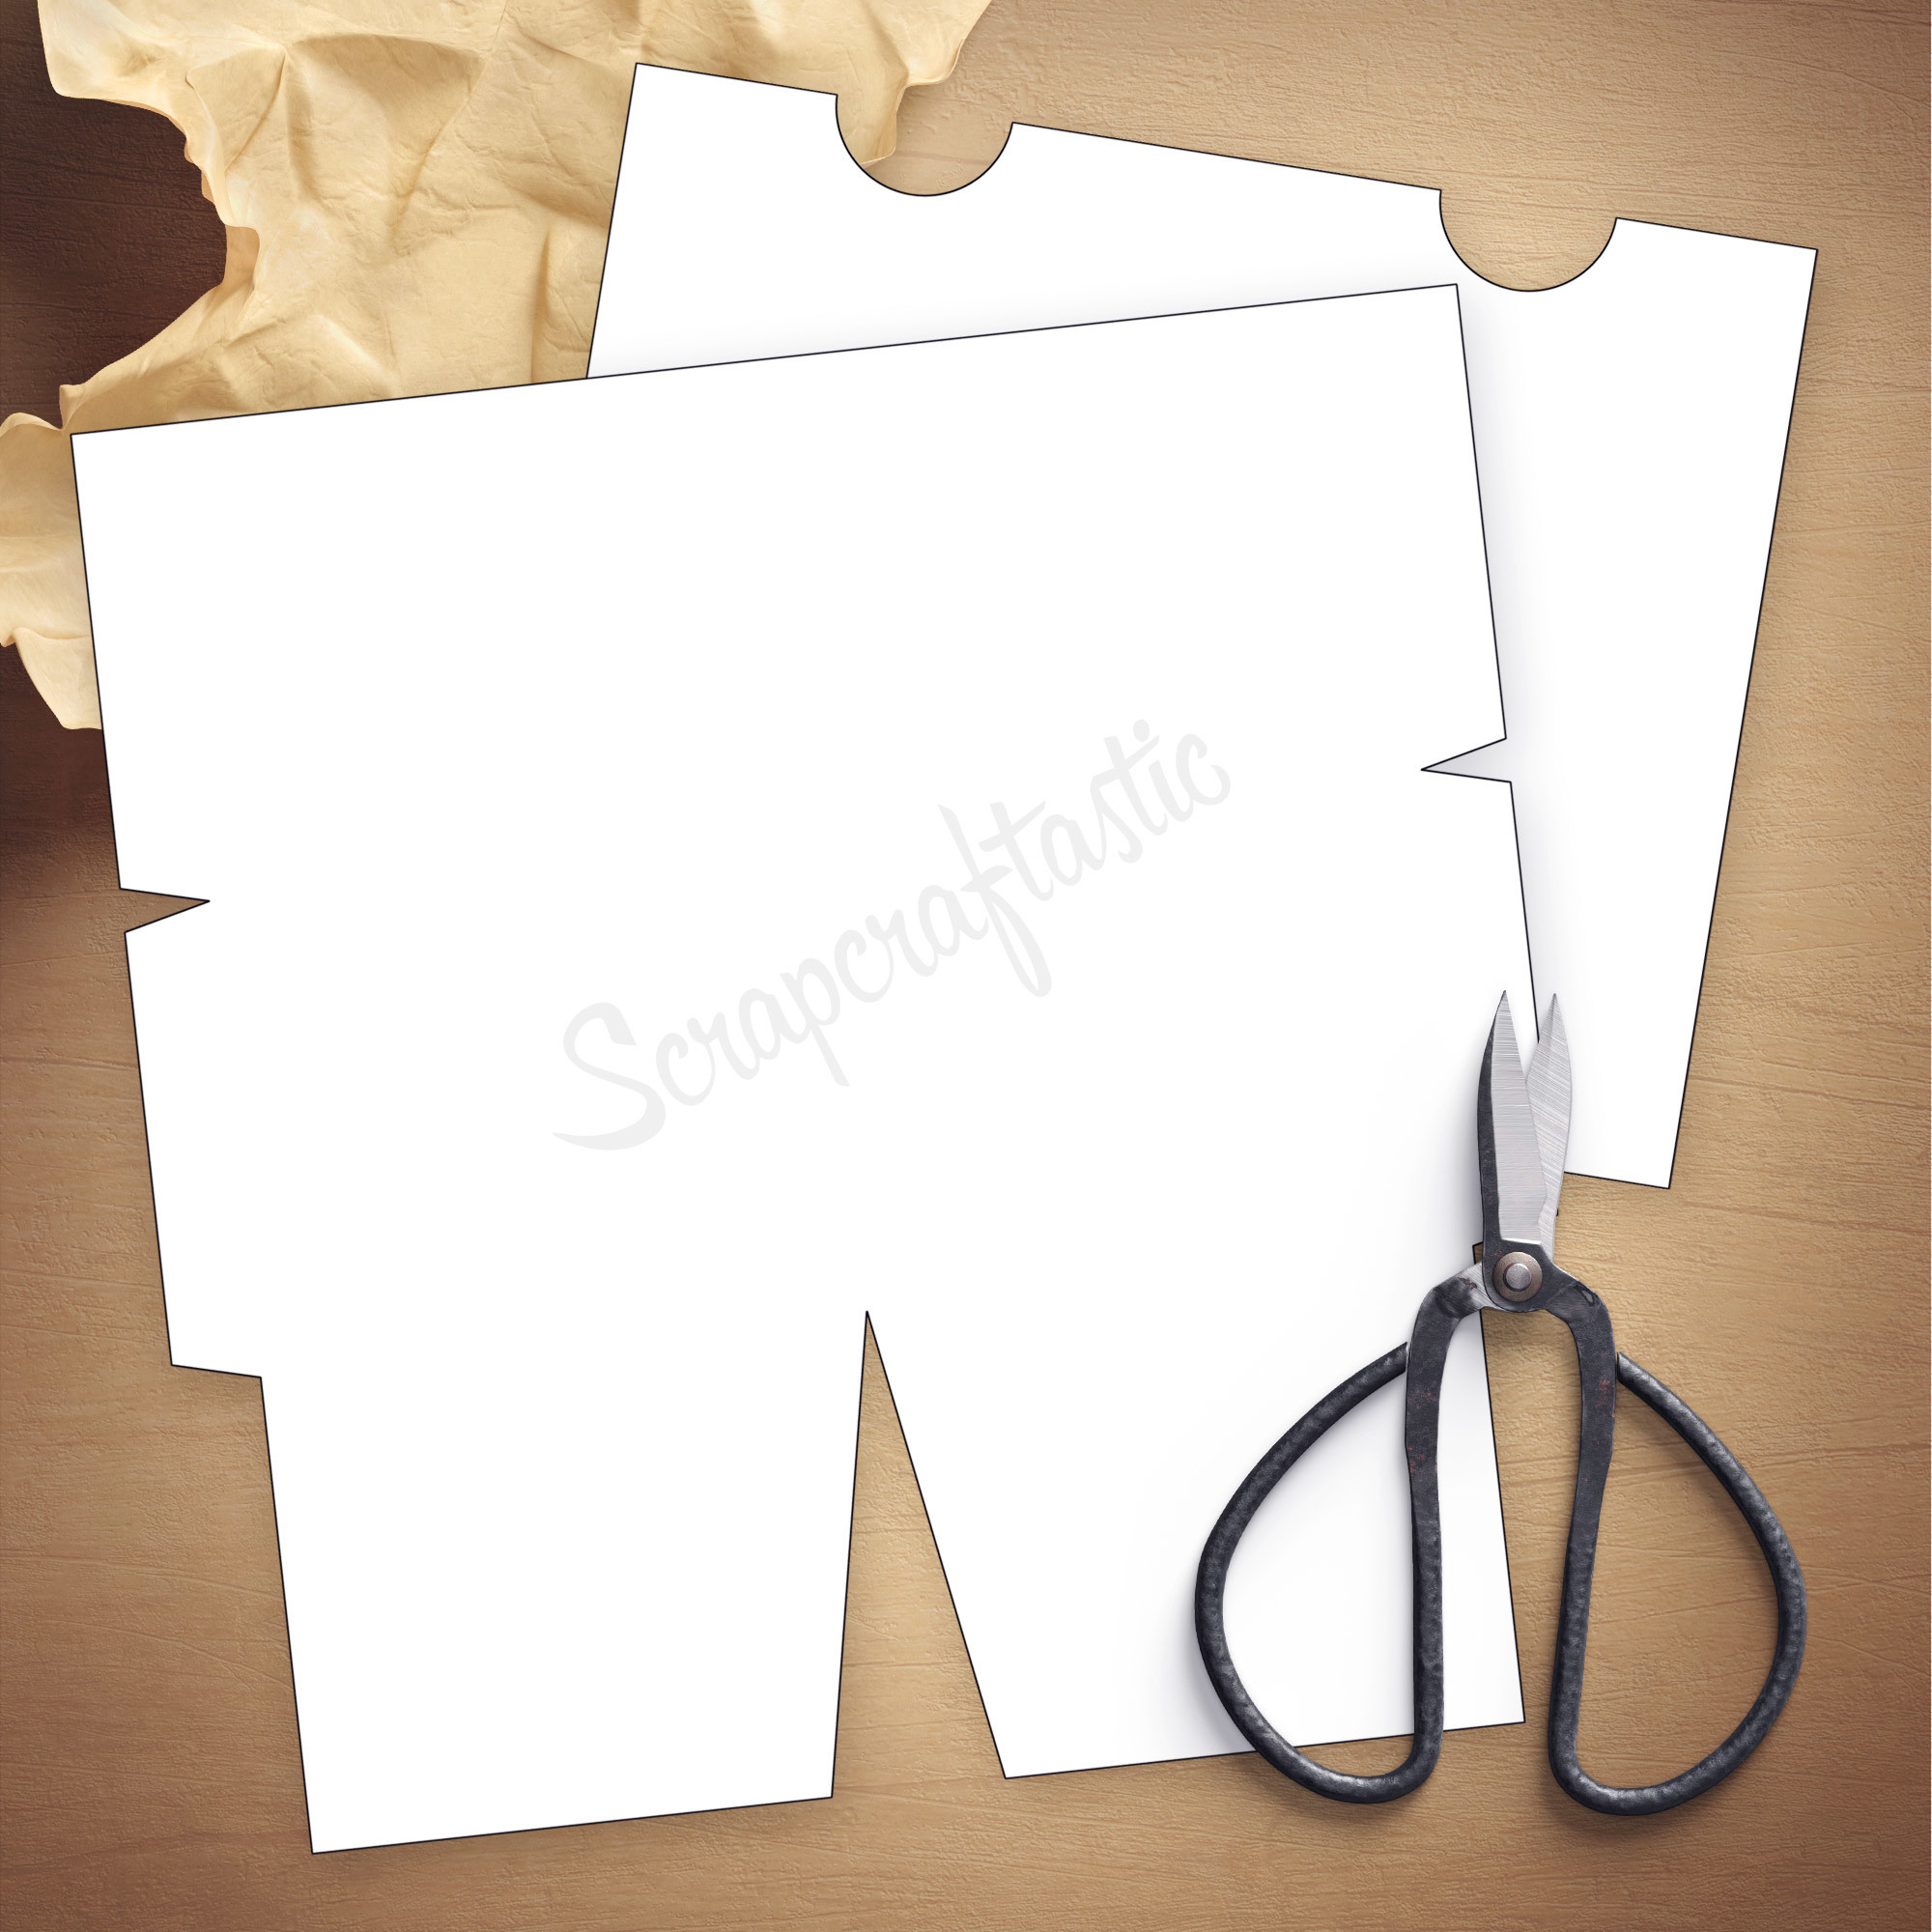 Folder Insert Template for Pocket Size Traveler's Notebook 07000